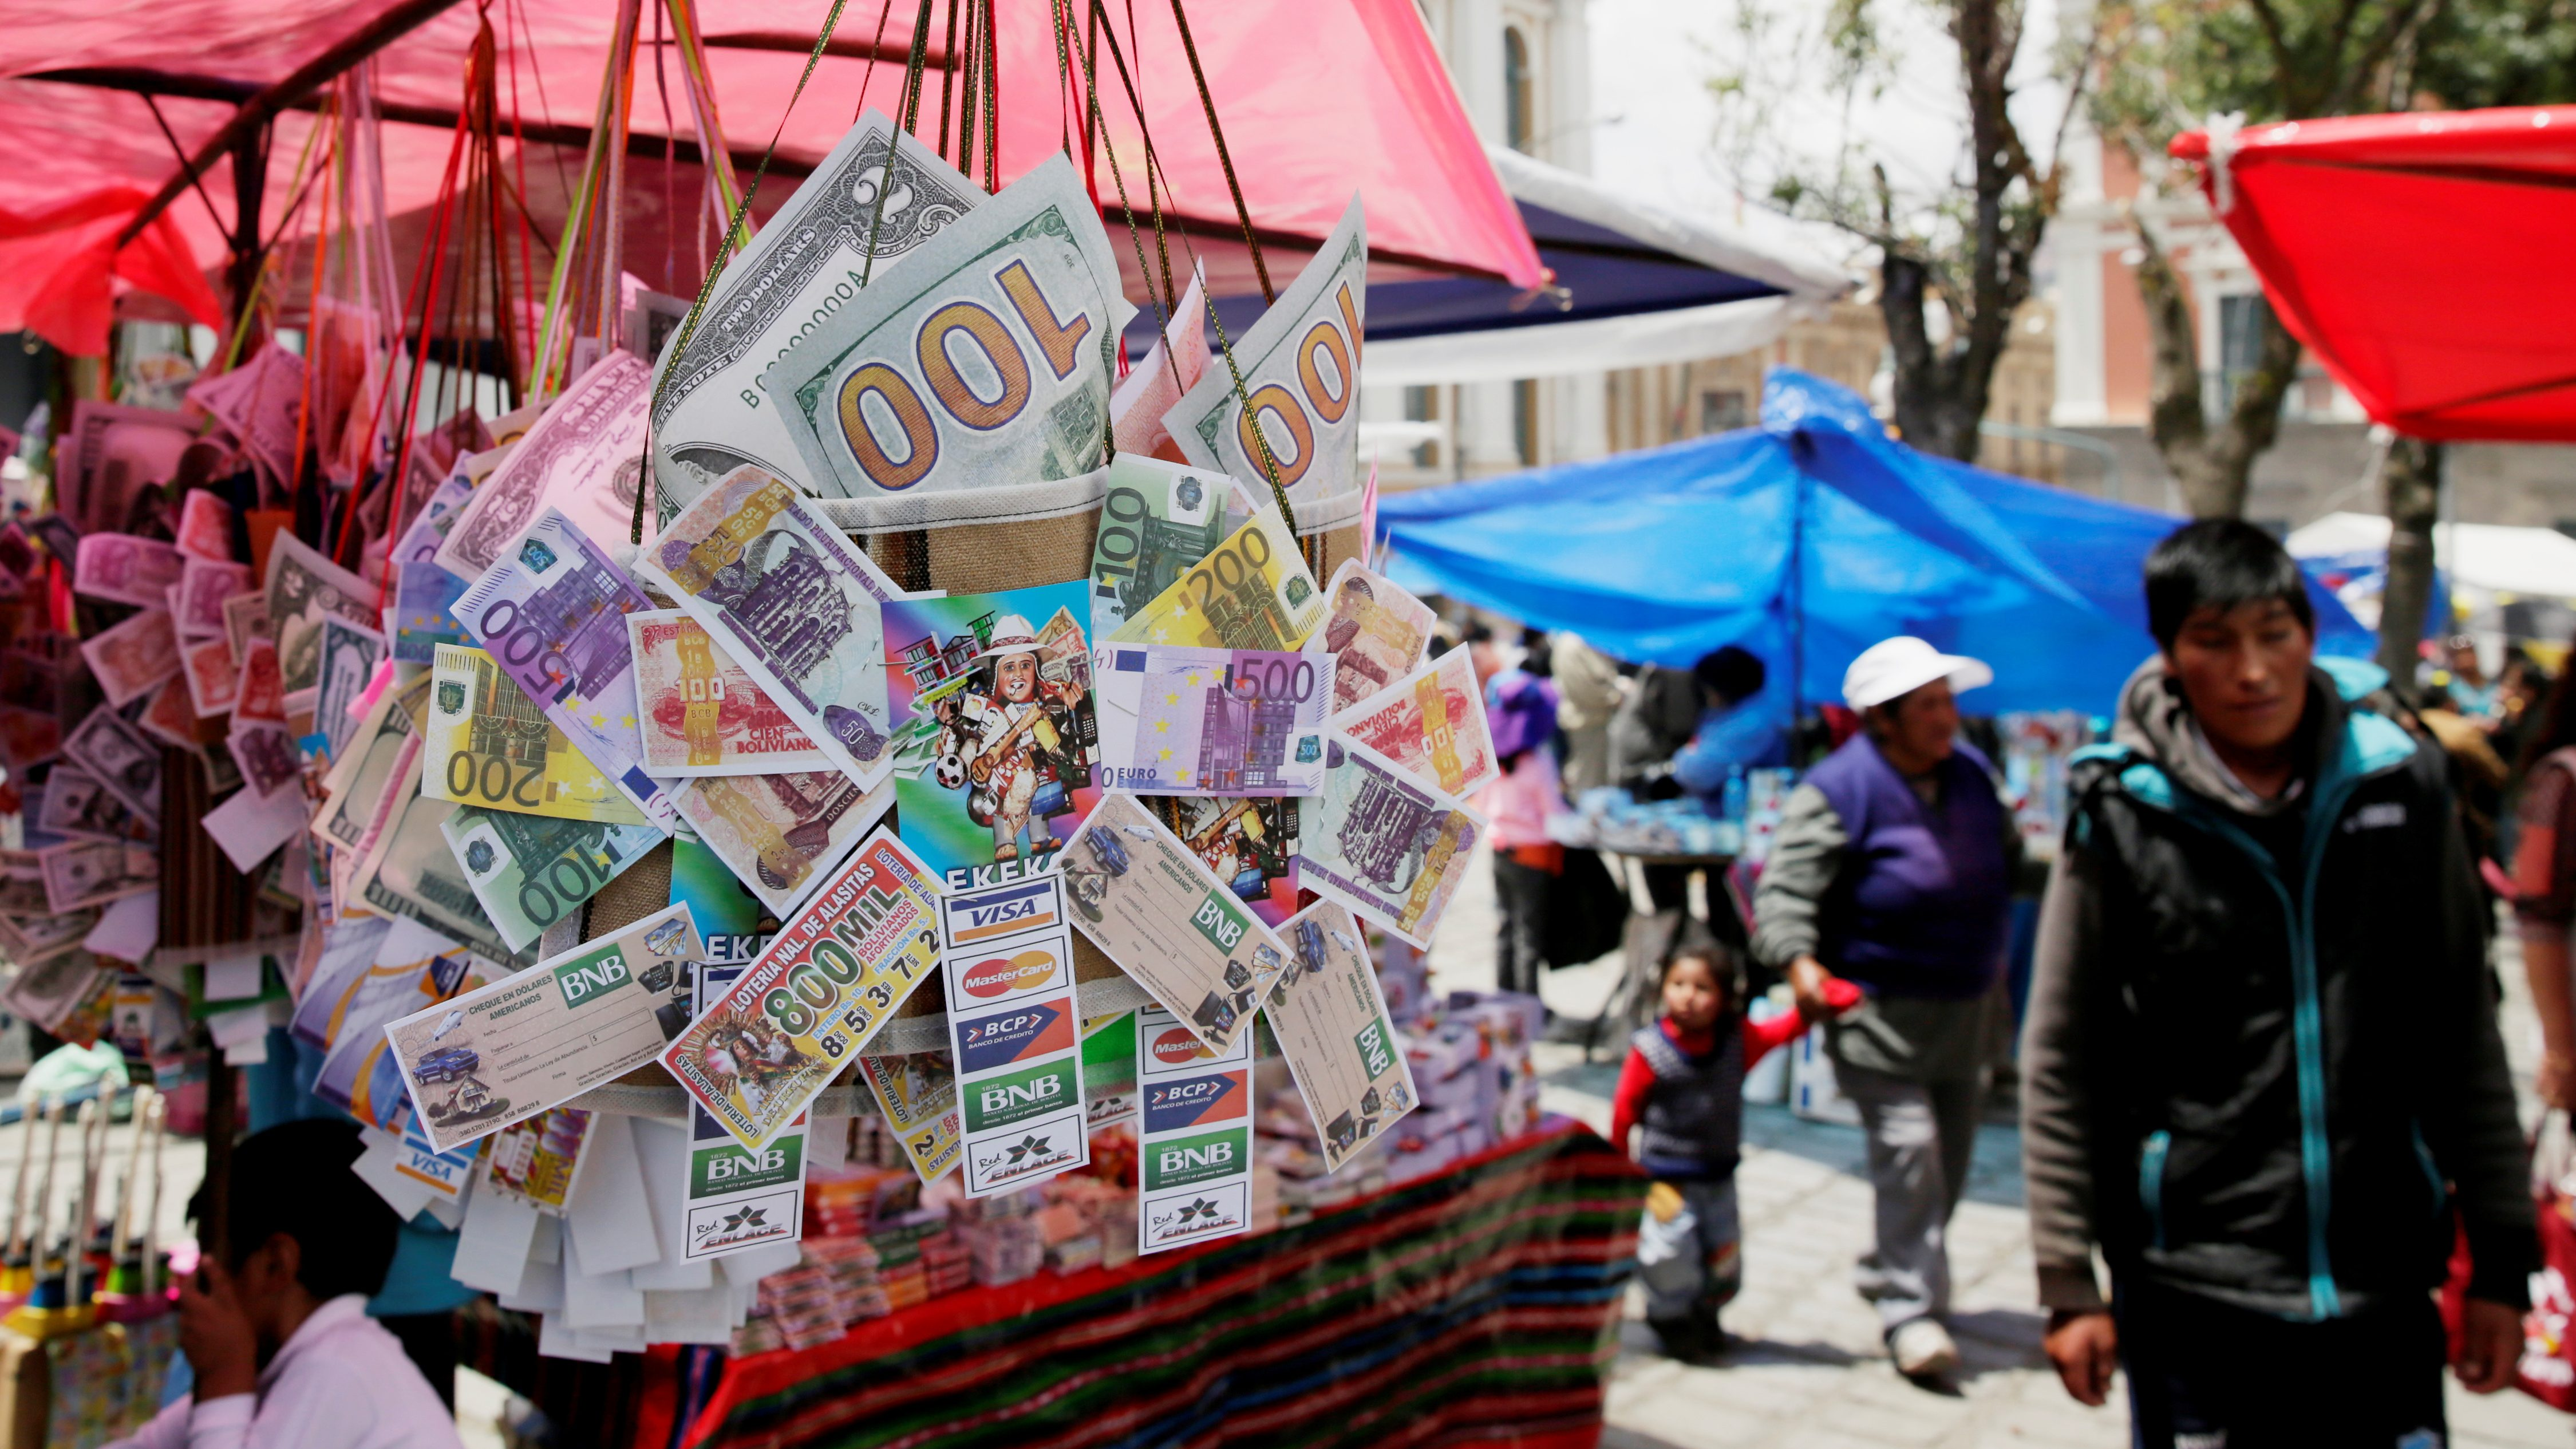 """Money, credit cards and lottery replicas are on display during the """"Alasita"""" (Buy me) fair in La Paz, Bolivia January 24, 2018. REUTERS/David Mercado - RC1EFE585DA0"""